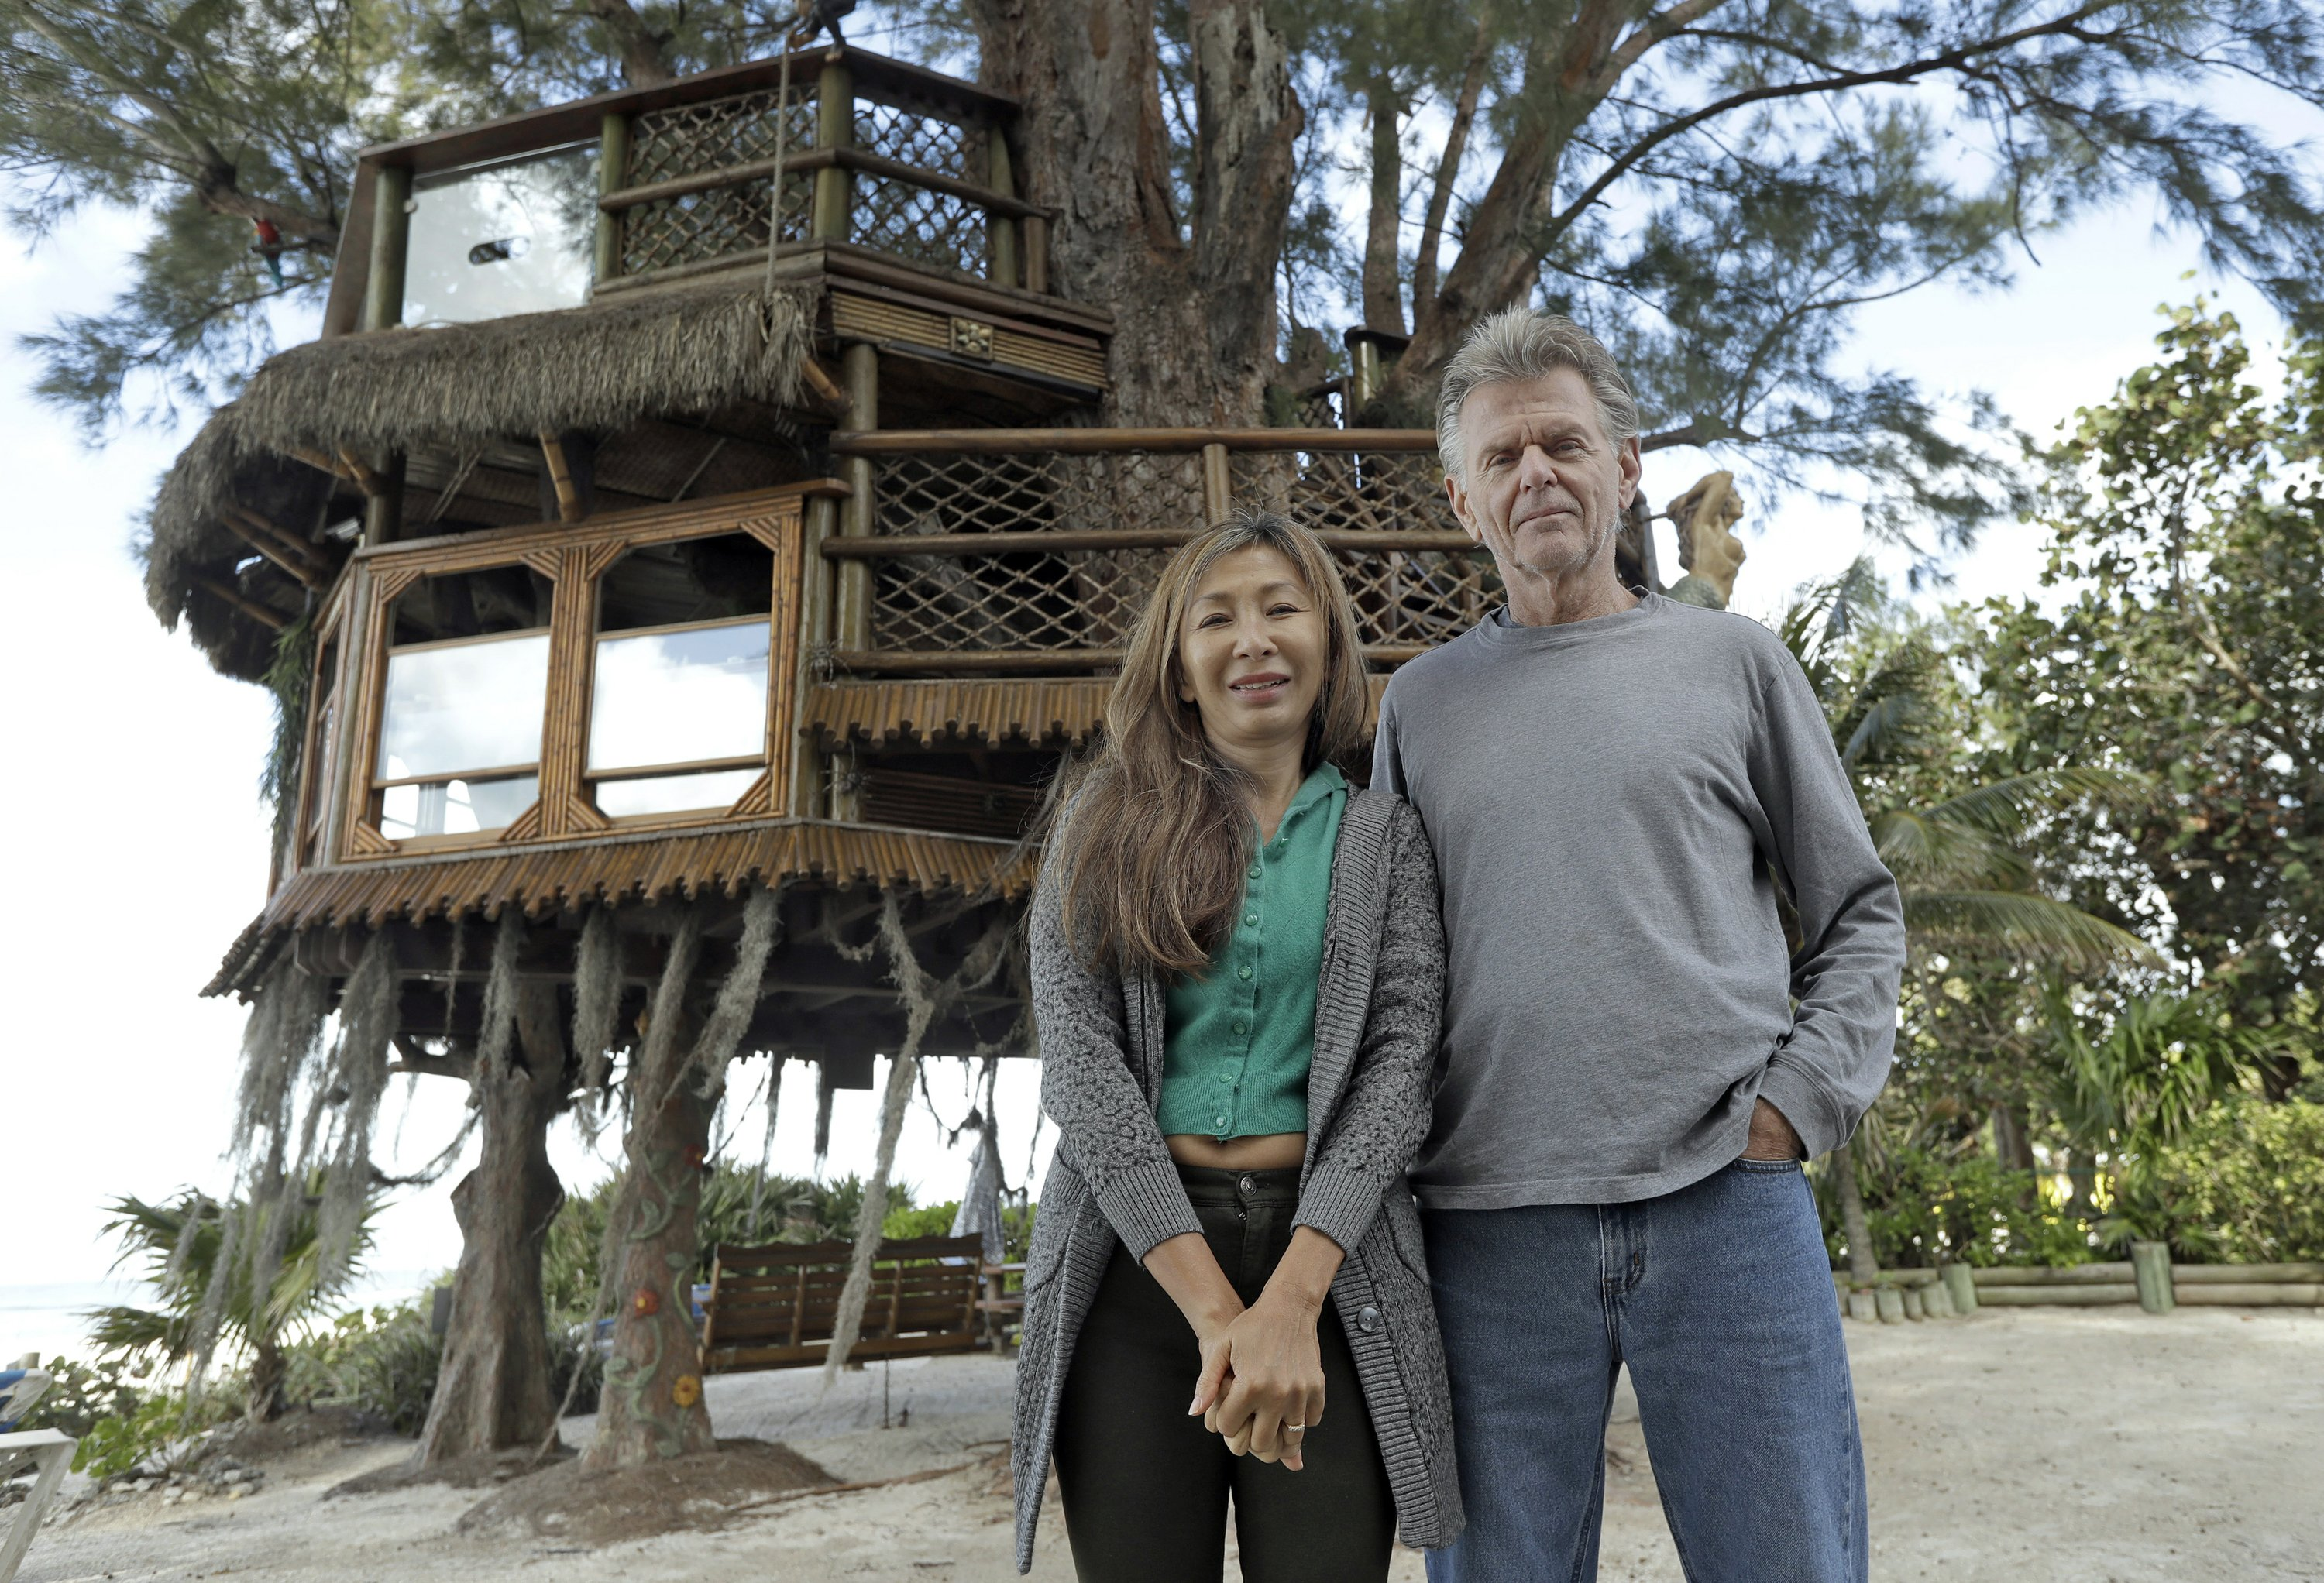 Told their treehouse must go, owners appeal to Supreme Court